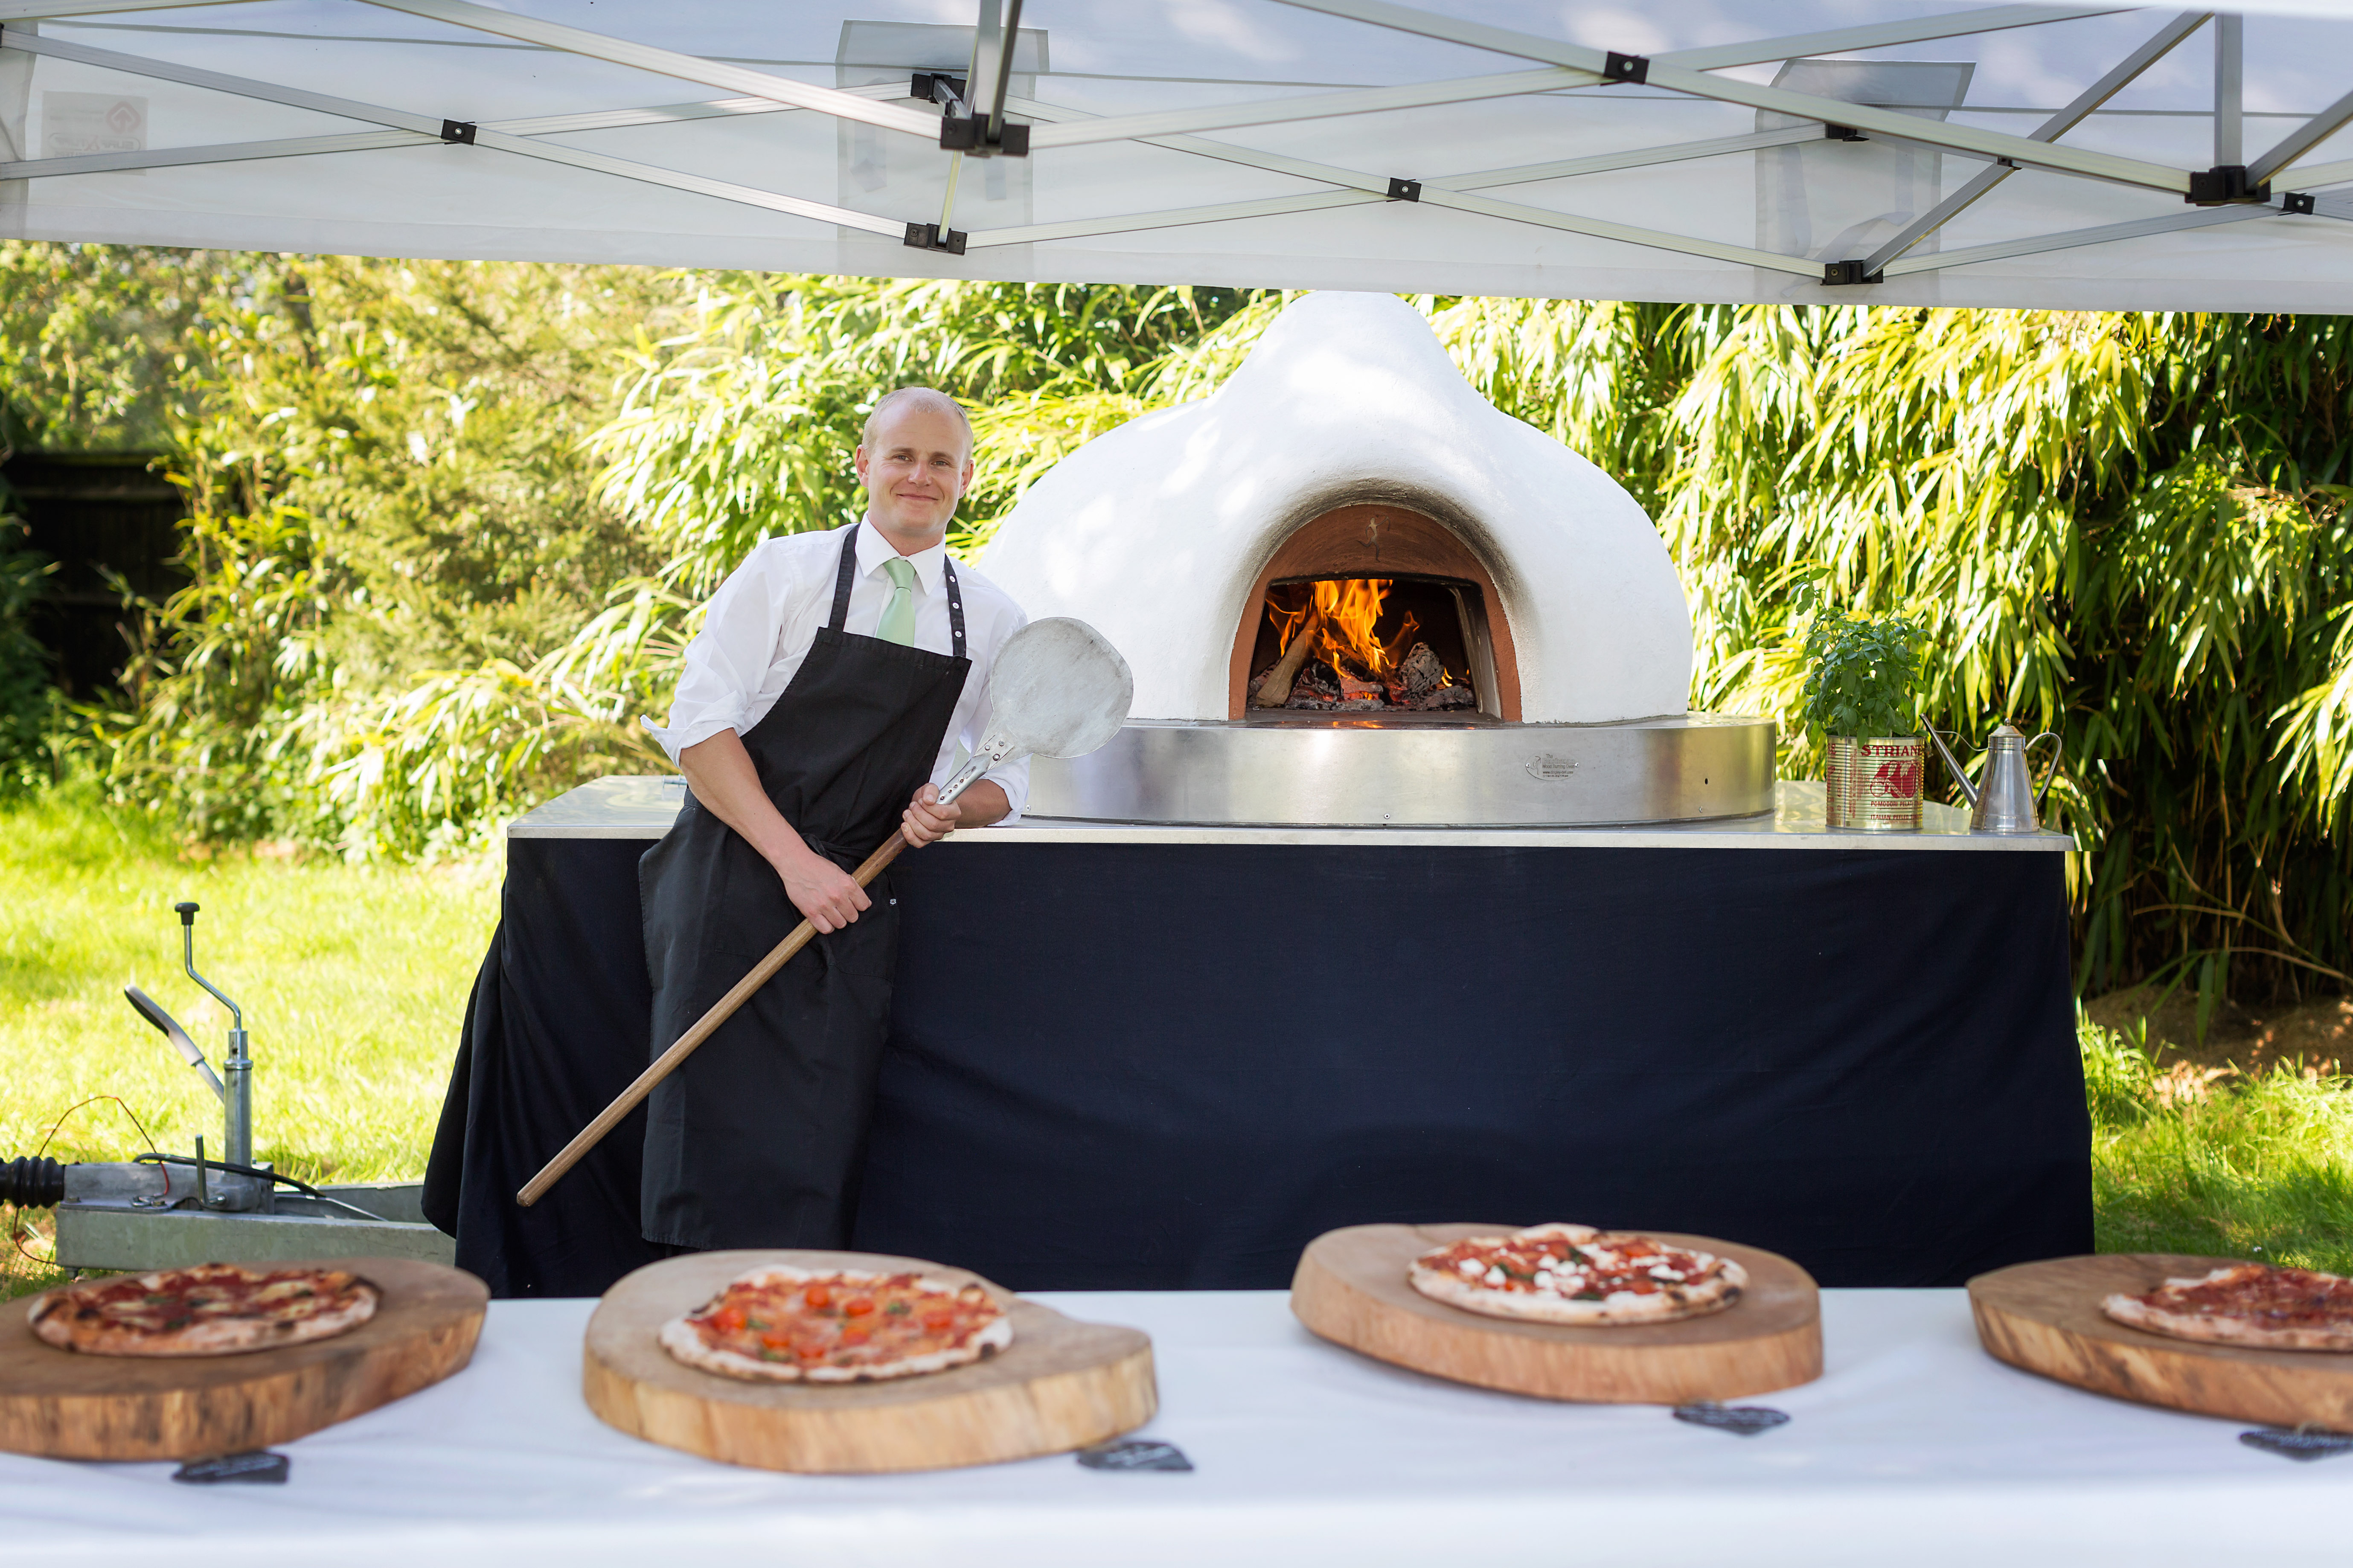 Nick from Pizza monkey and his pizza stove